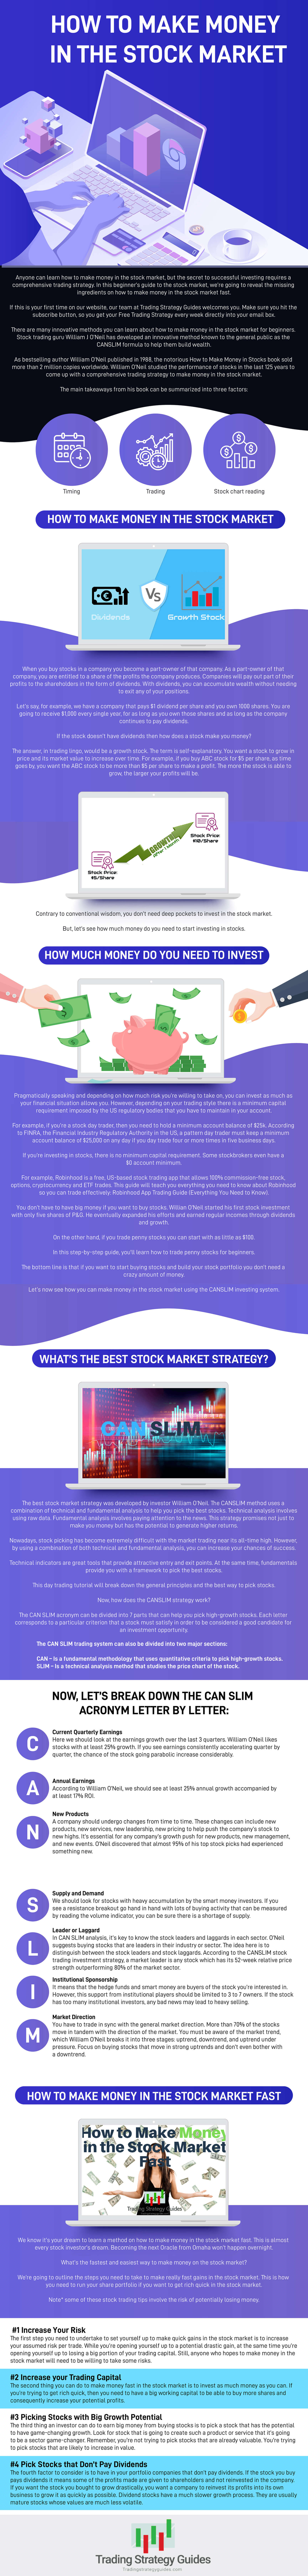 how to make money in the stock market for beginners